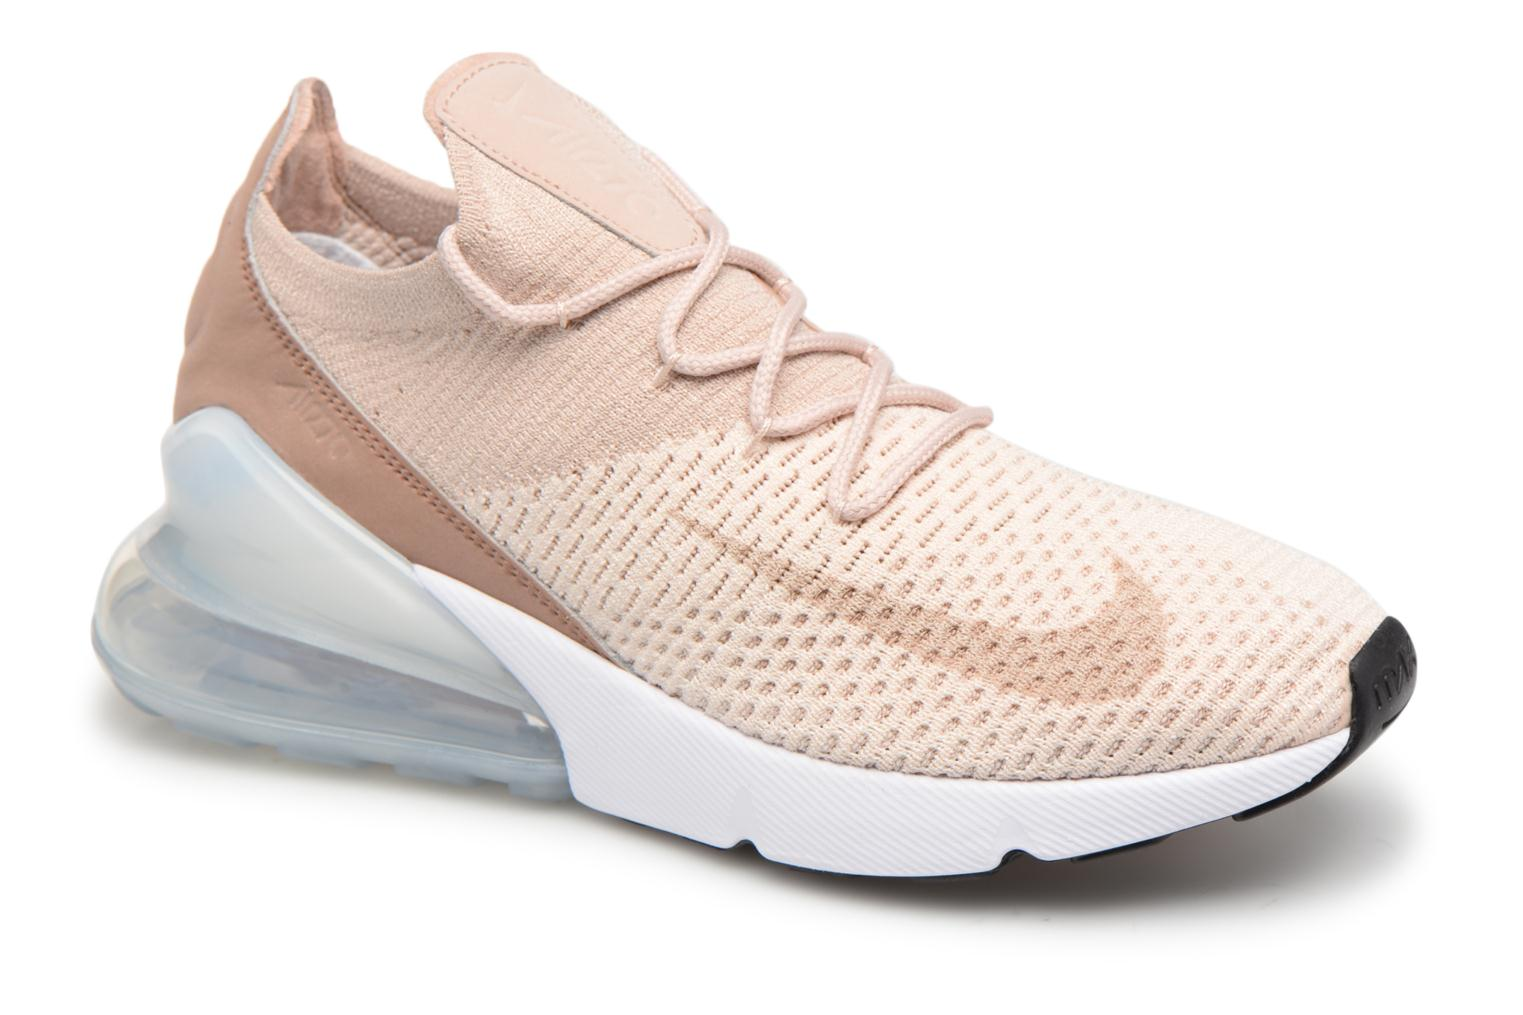 Air Guava Particle Dust Flyknit W Ice 270 Max Nike Desert Beige 5xXOqfwag